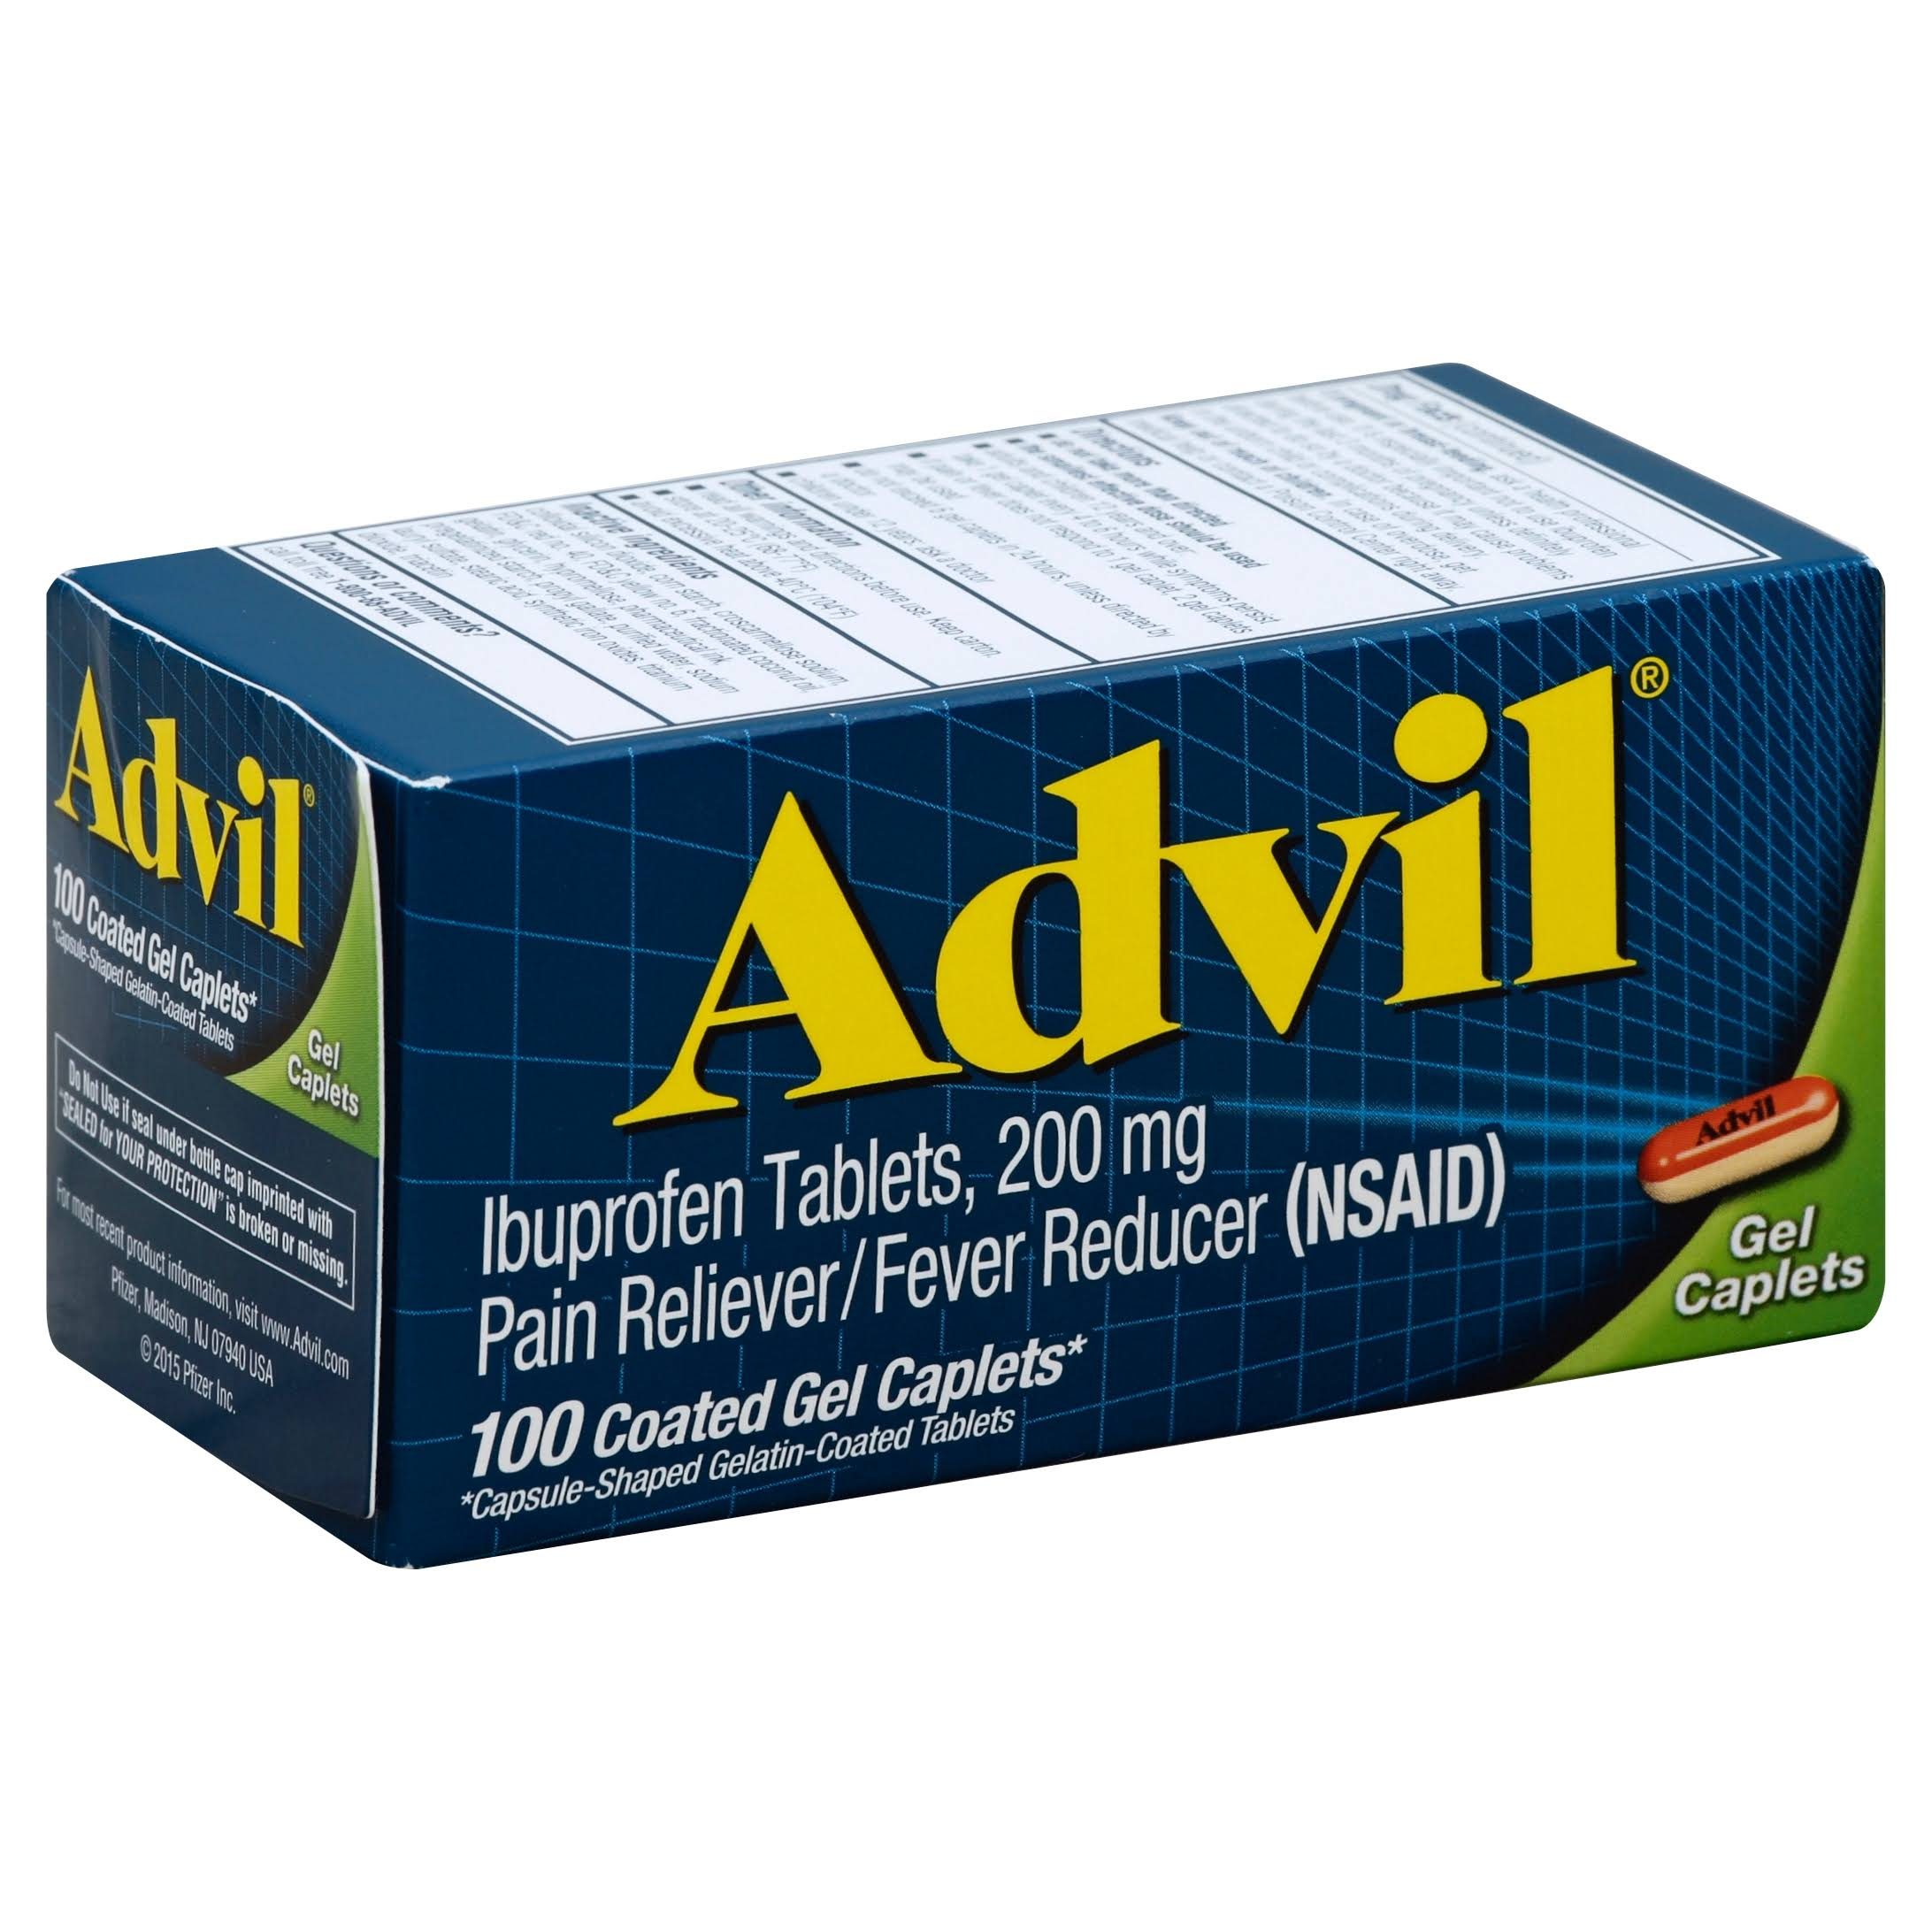 Advil Pain Reliever - 100 Coated Gel Capsules, 200mg